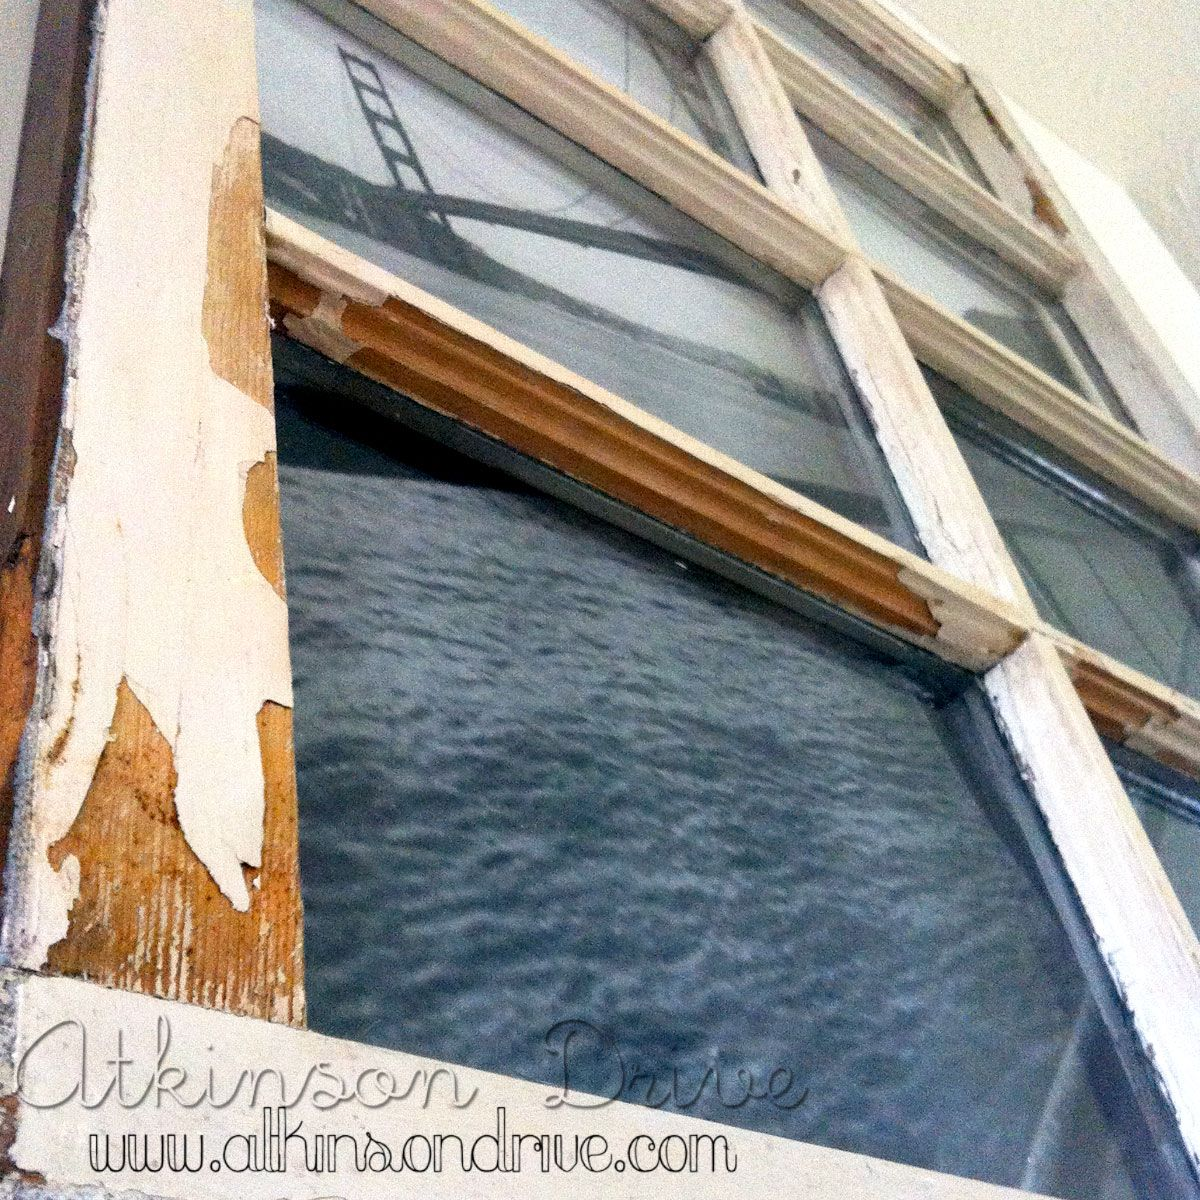 6 pane window frame ideas  how to paint and distress interior doors  interior door doors and